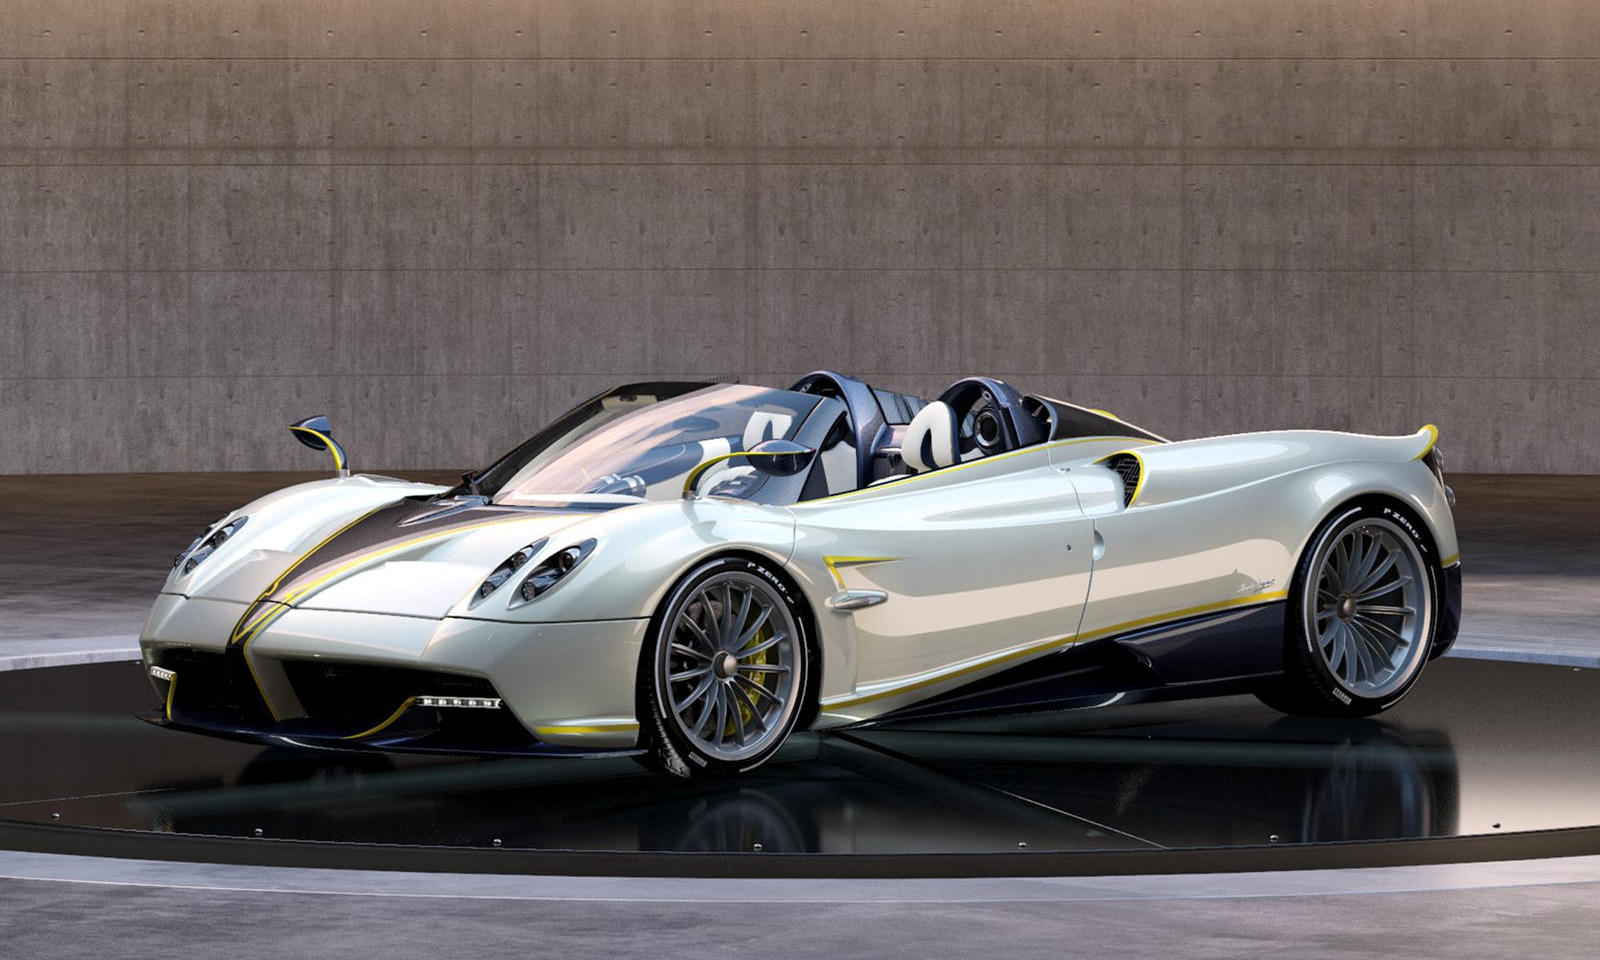 Pagani's latest special edition Huayra Roadster is named after the biggest bird of the falcon species